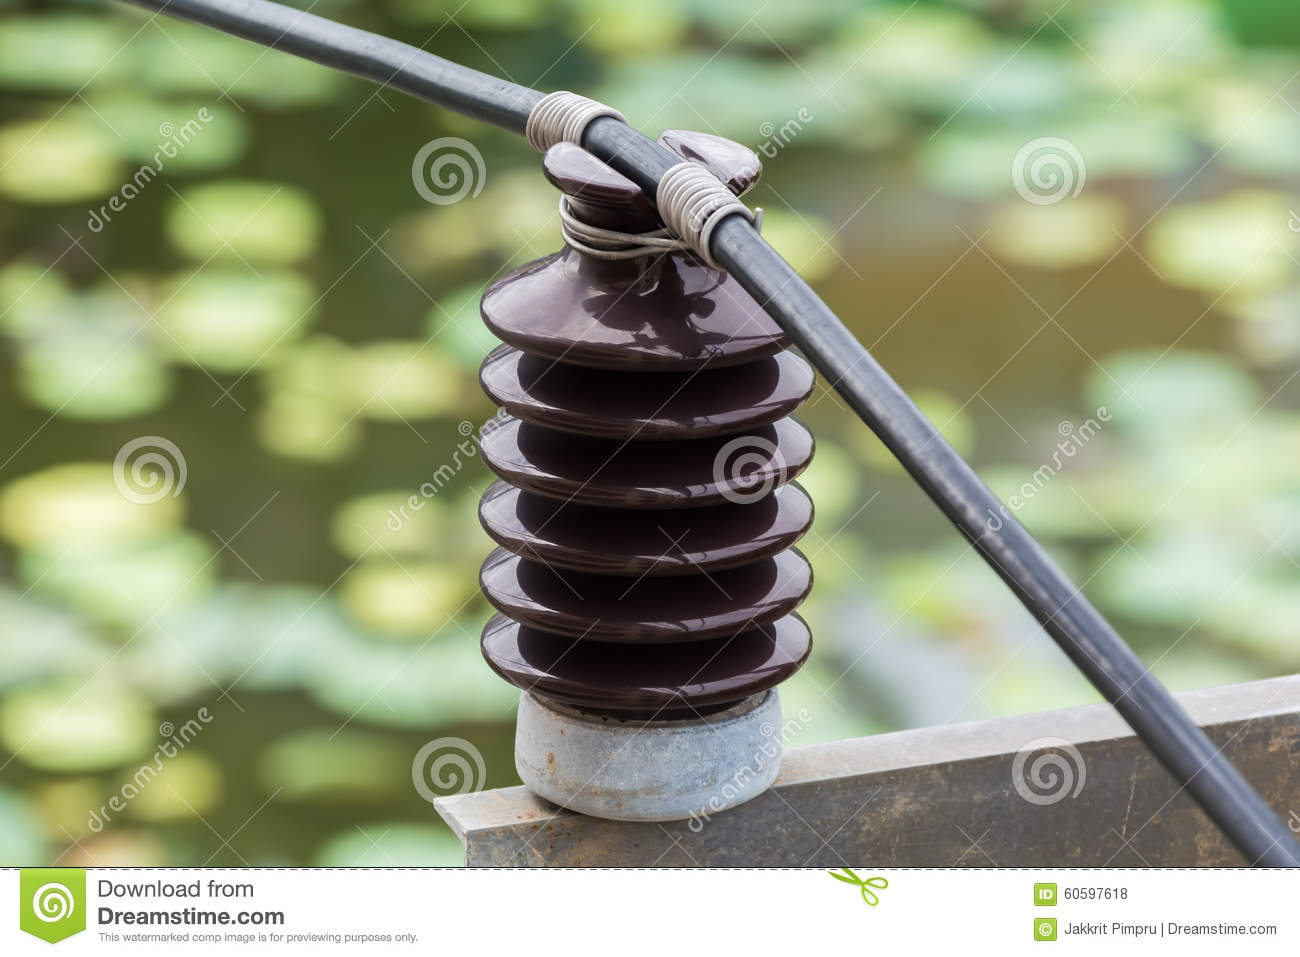 Electrical insulator stock photo  Image of post, danger - 60597618